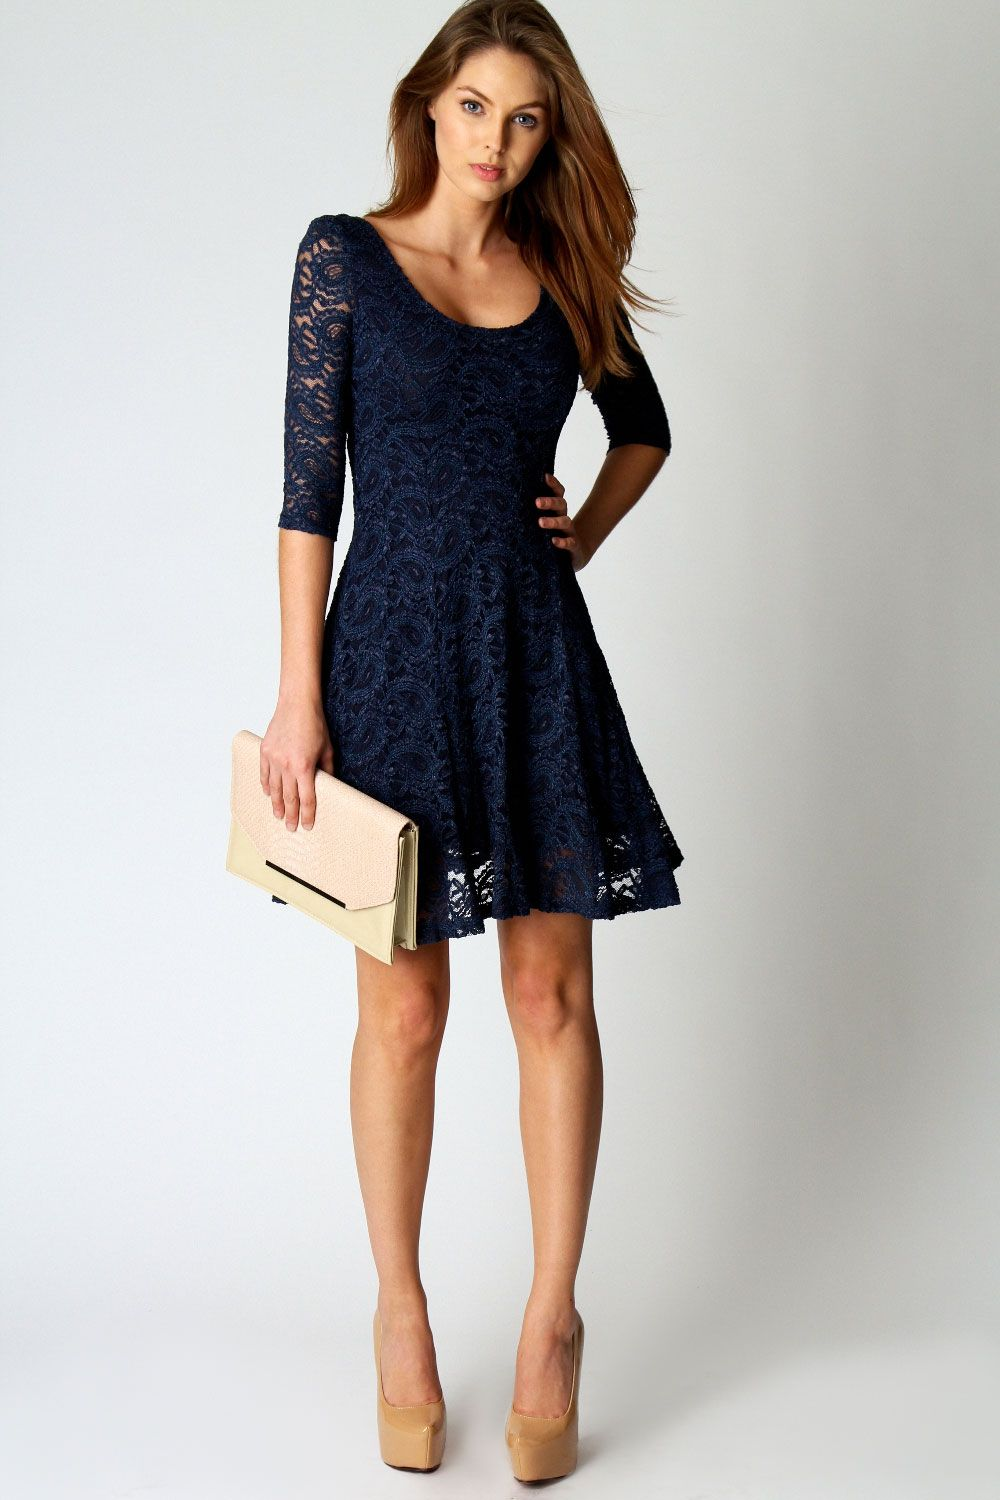 d1be6fd90a Ivy All Over Lace 3 4 Sleeve Fit + Flare Dress